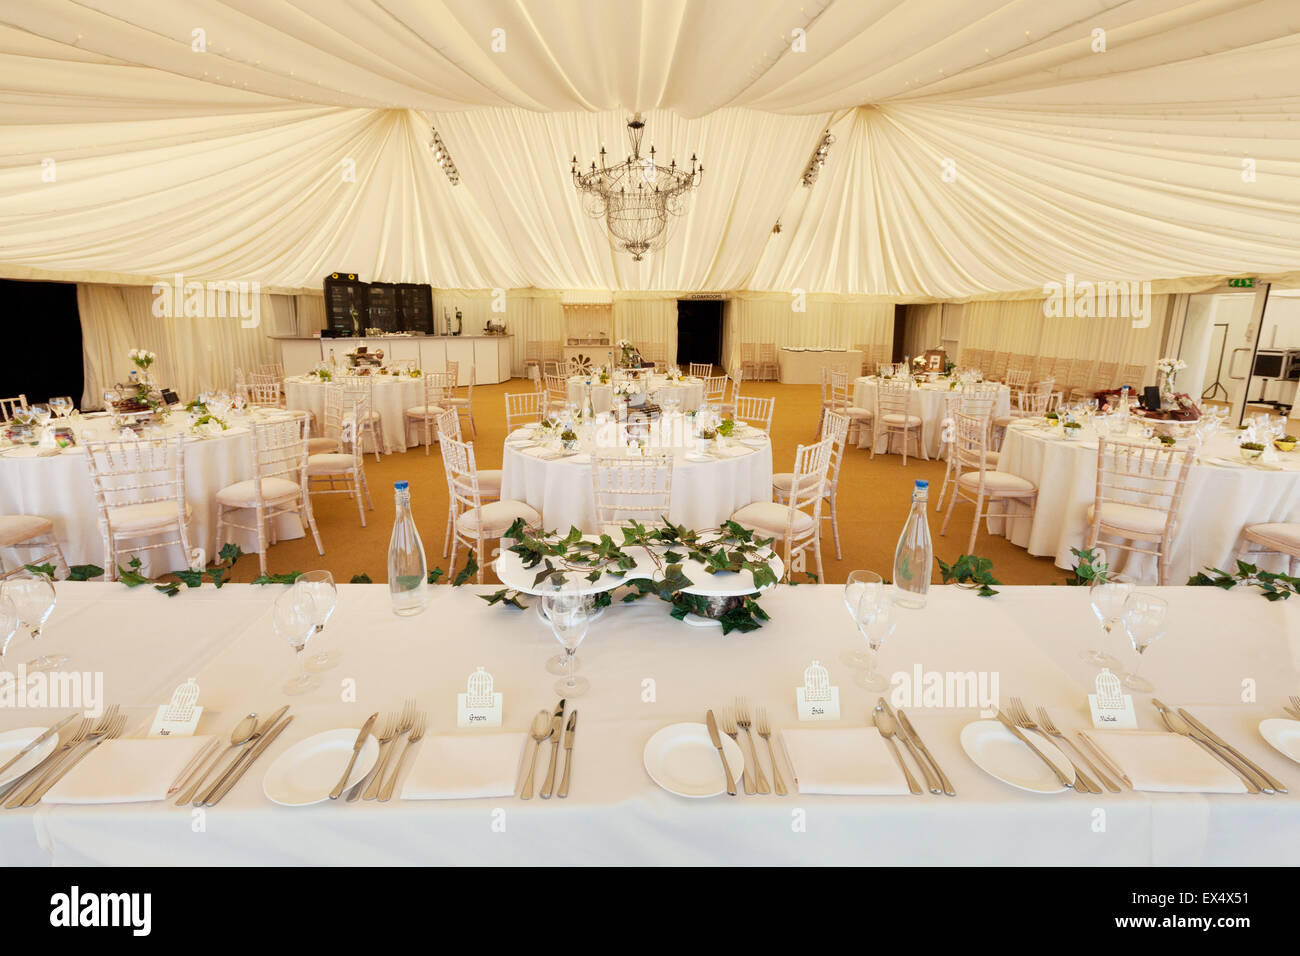 Wedding reception tables and place setting laid, UK - Stock Image